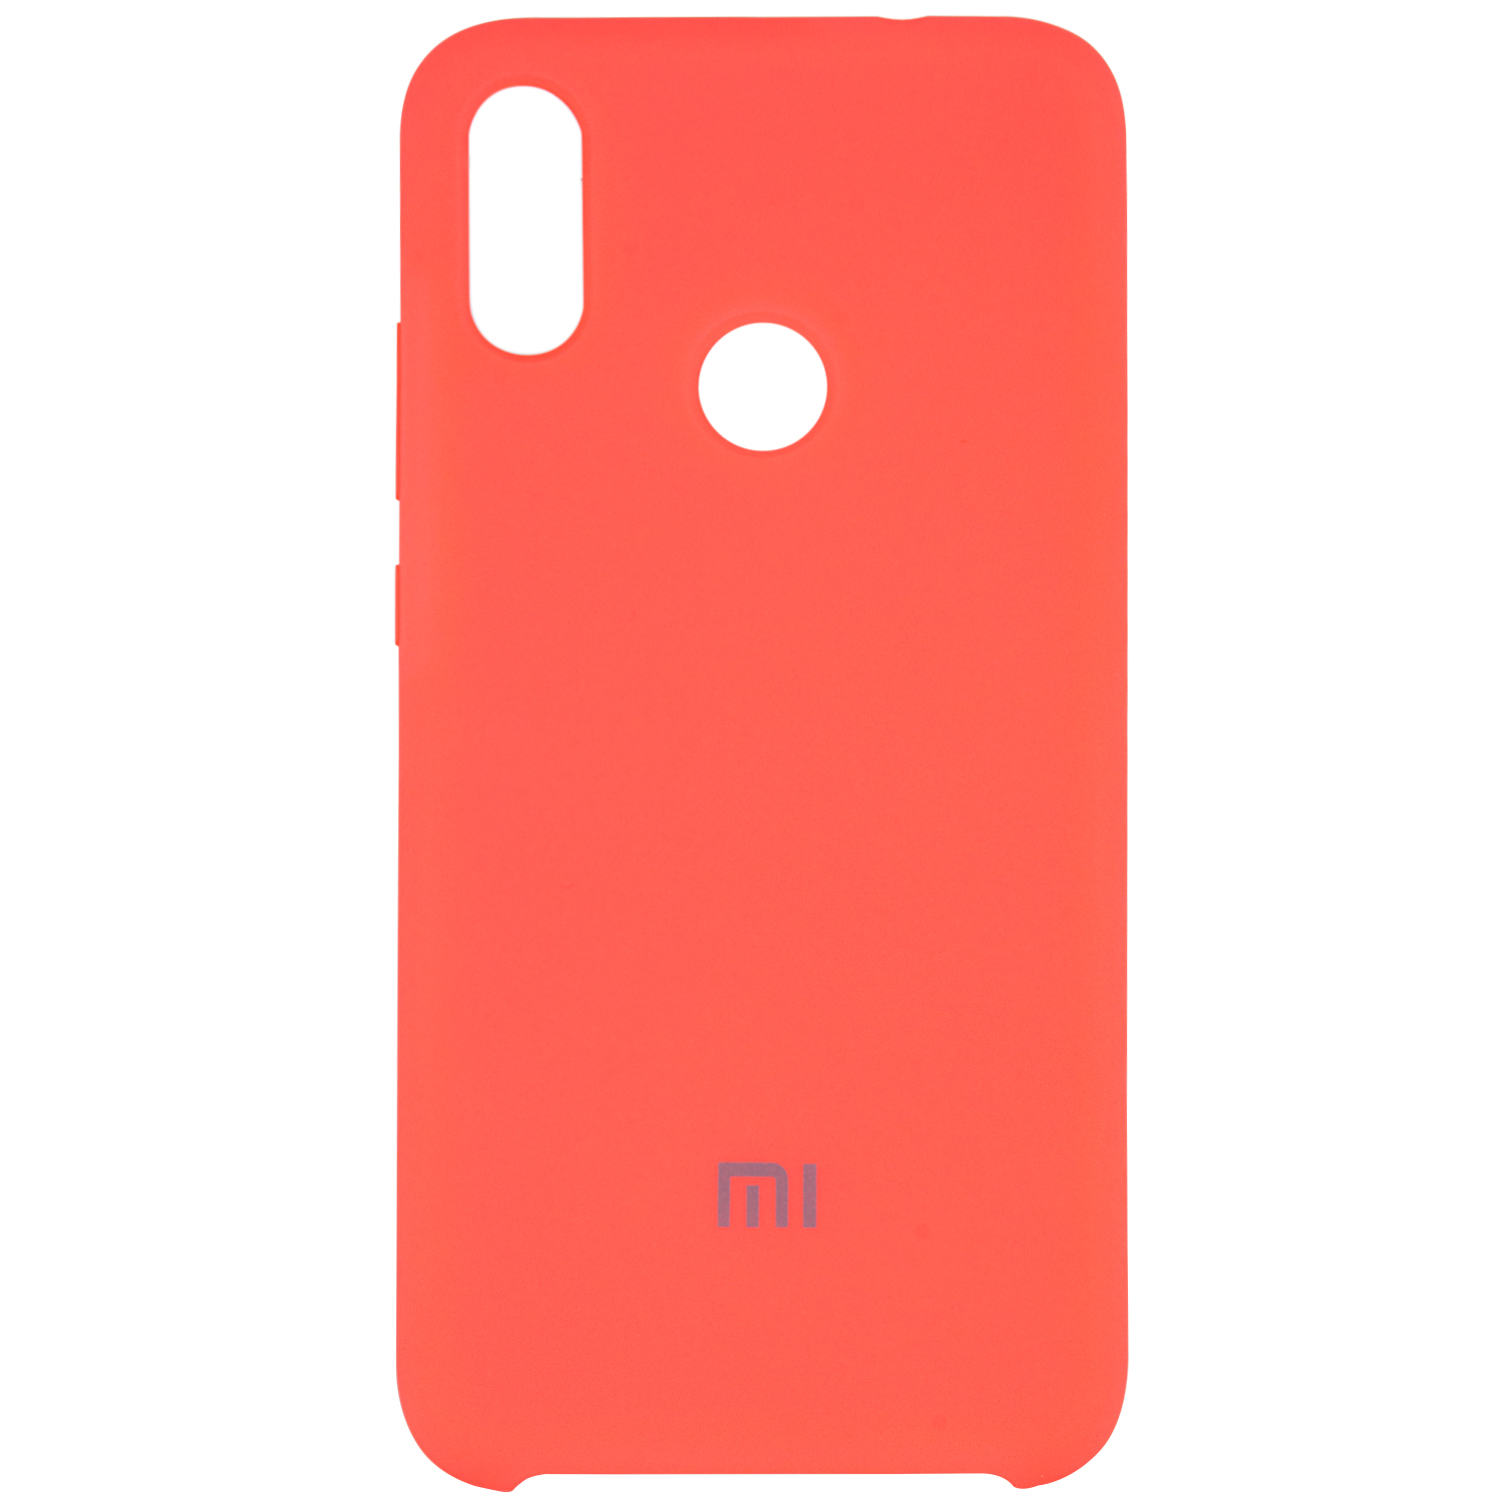 Чехол Silicone case для Xiaomi Redmi Note 7 / Note 7 Pro / Note 7s (Розовый / Living coral)